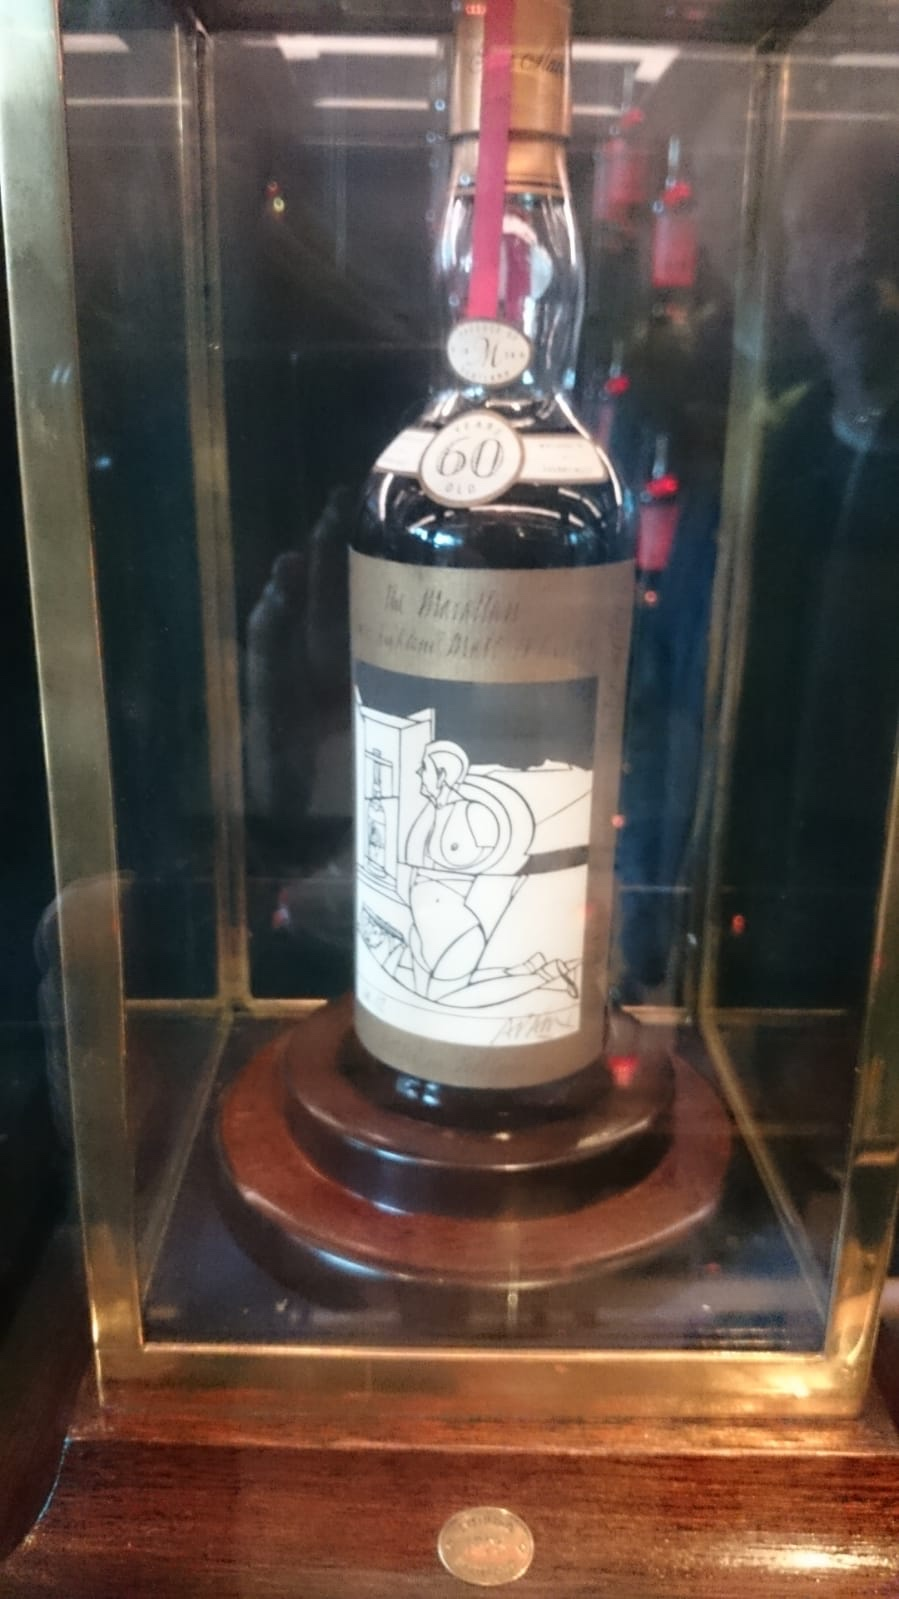 The 850,000 pound bottle (a little blurry)